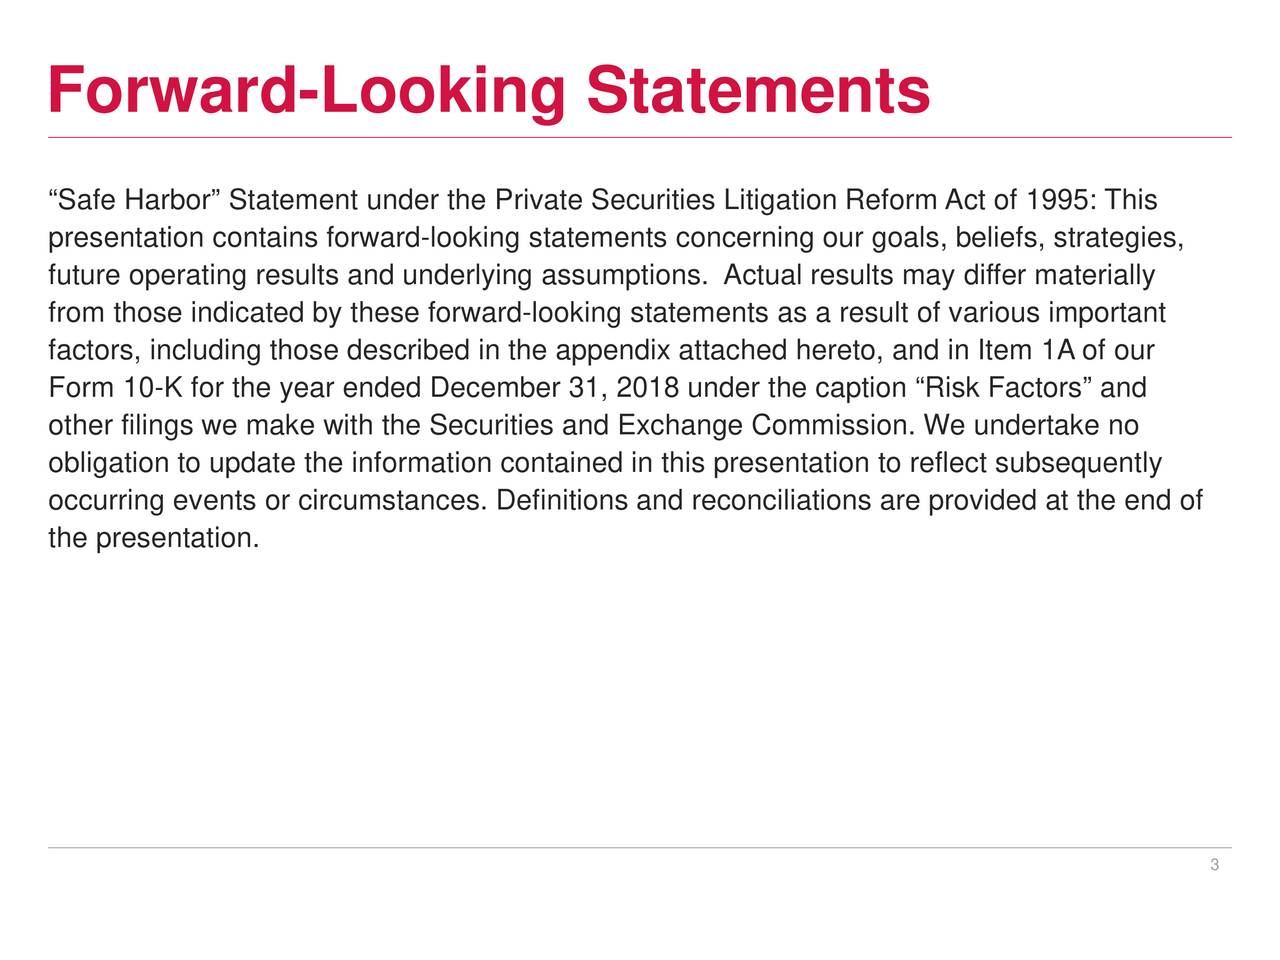 """Safe Harbor"" Statement under the Private Securities Litigation Reform Act of 1995: This presentation contains forward-looking statements concerning our goals, beliefs, strategies, future operating results and underlying assumptions. Actual results may differ materially from those indicated by these forward-looking statements as a result of various important factors, including those described in the appendix attached hereto, and in Item 1A of our Form 10-K for the year ended December 31, 2018 under the caption ""Risk Factors"" and other filings we make with the Securities and Exchange Commission. We undertake no obligation to update the information contained in this presentation to reflect subsequently occurring events or circumstances. Definitions and reconciliations are provided at the end of the presentation. 3"